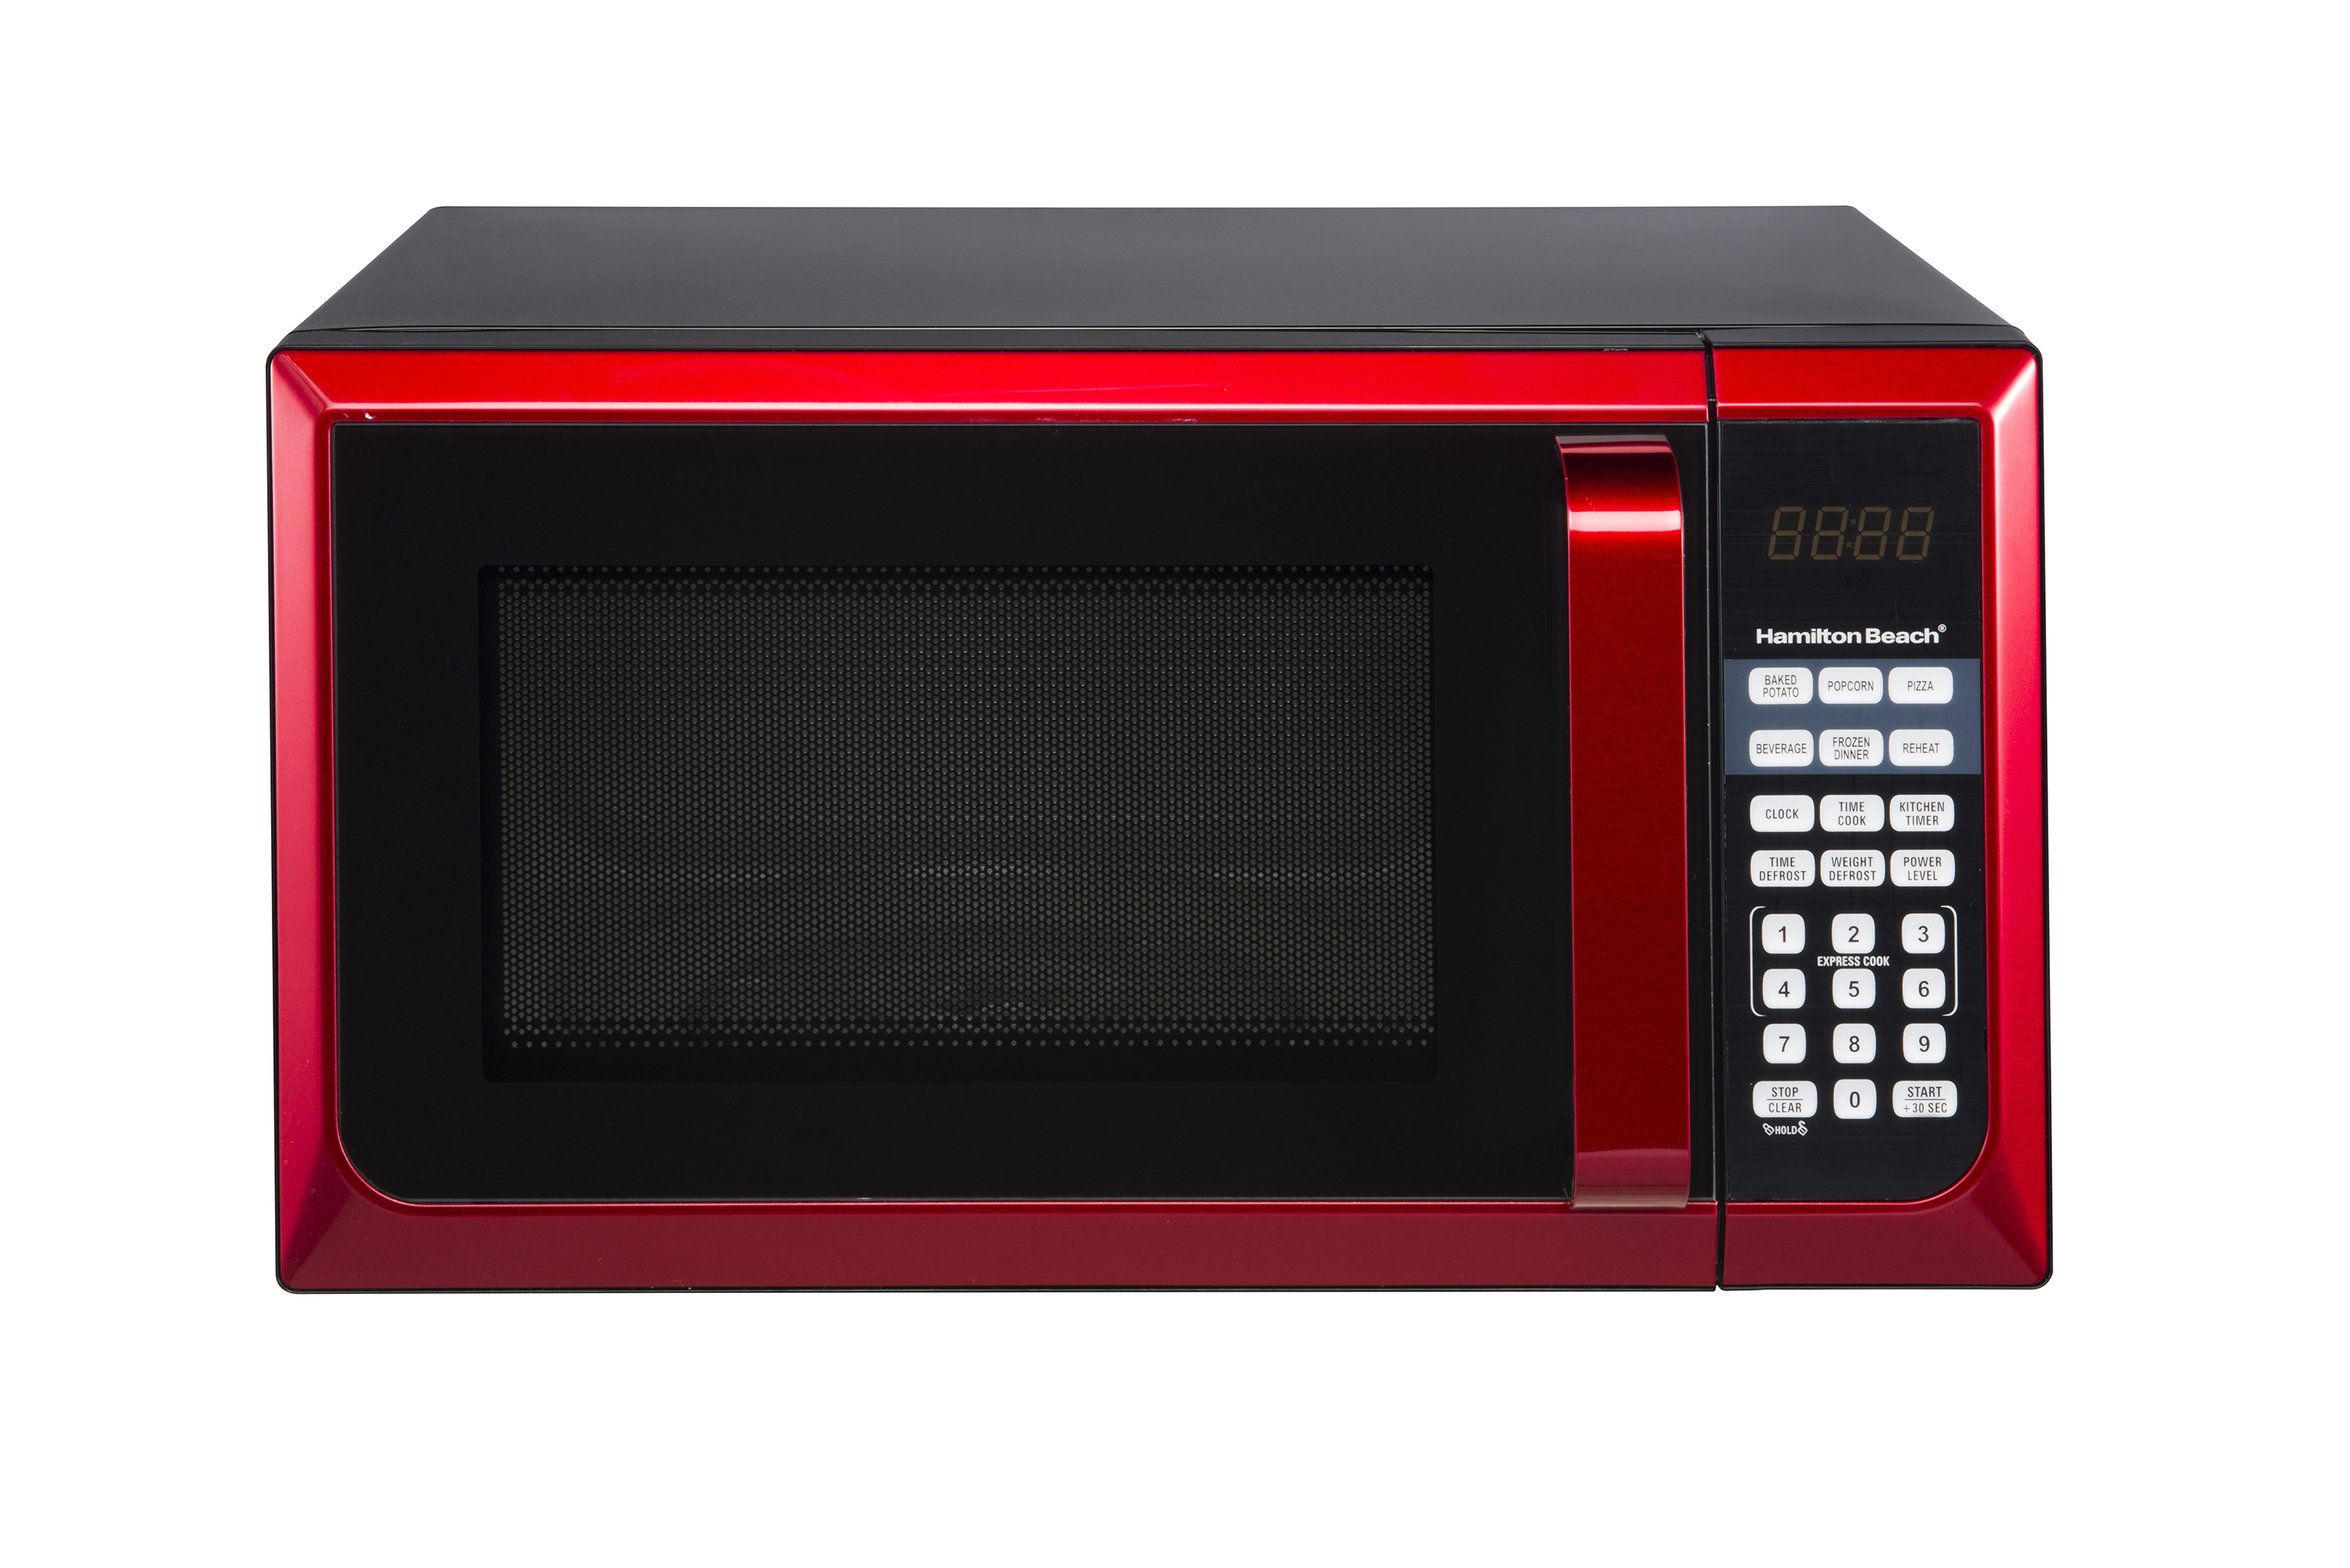 hamilton beach stainless steel 0 9 cu ft red microwave oven walmart com